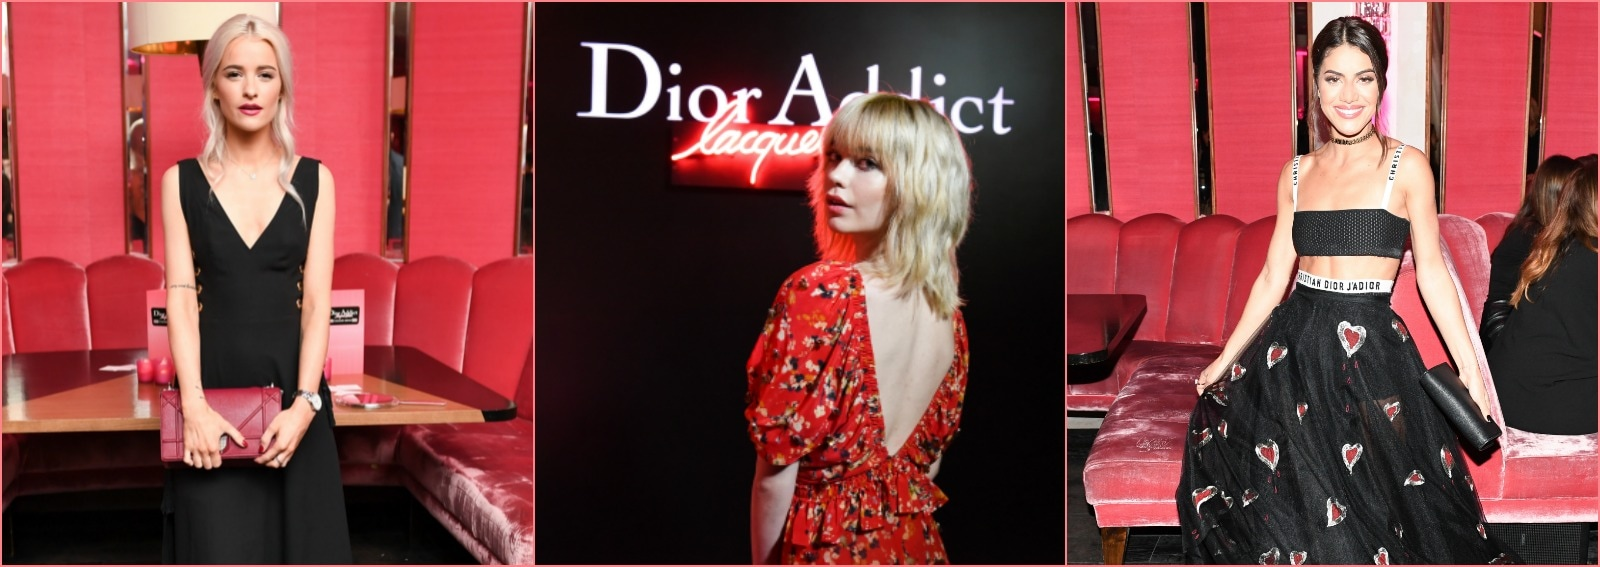 dior-addict-party-los-angeles-cover dekstop 02